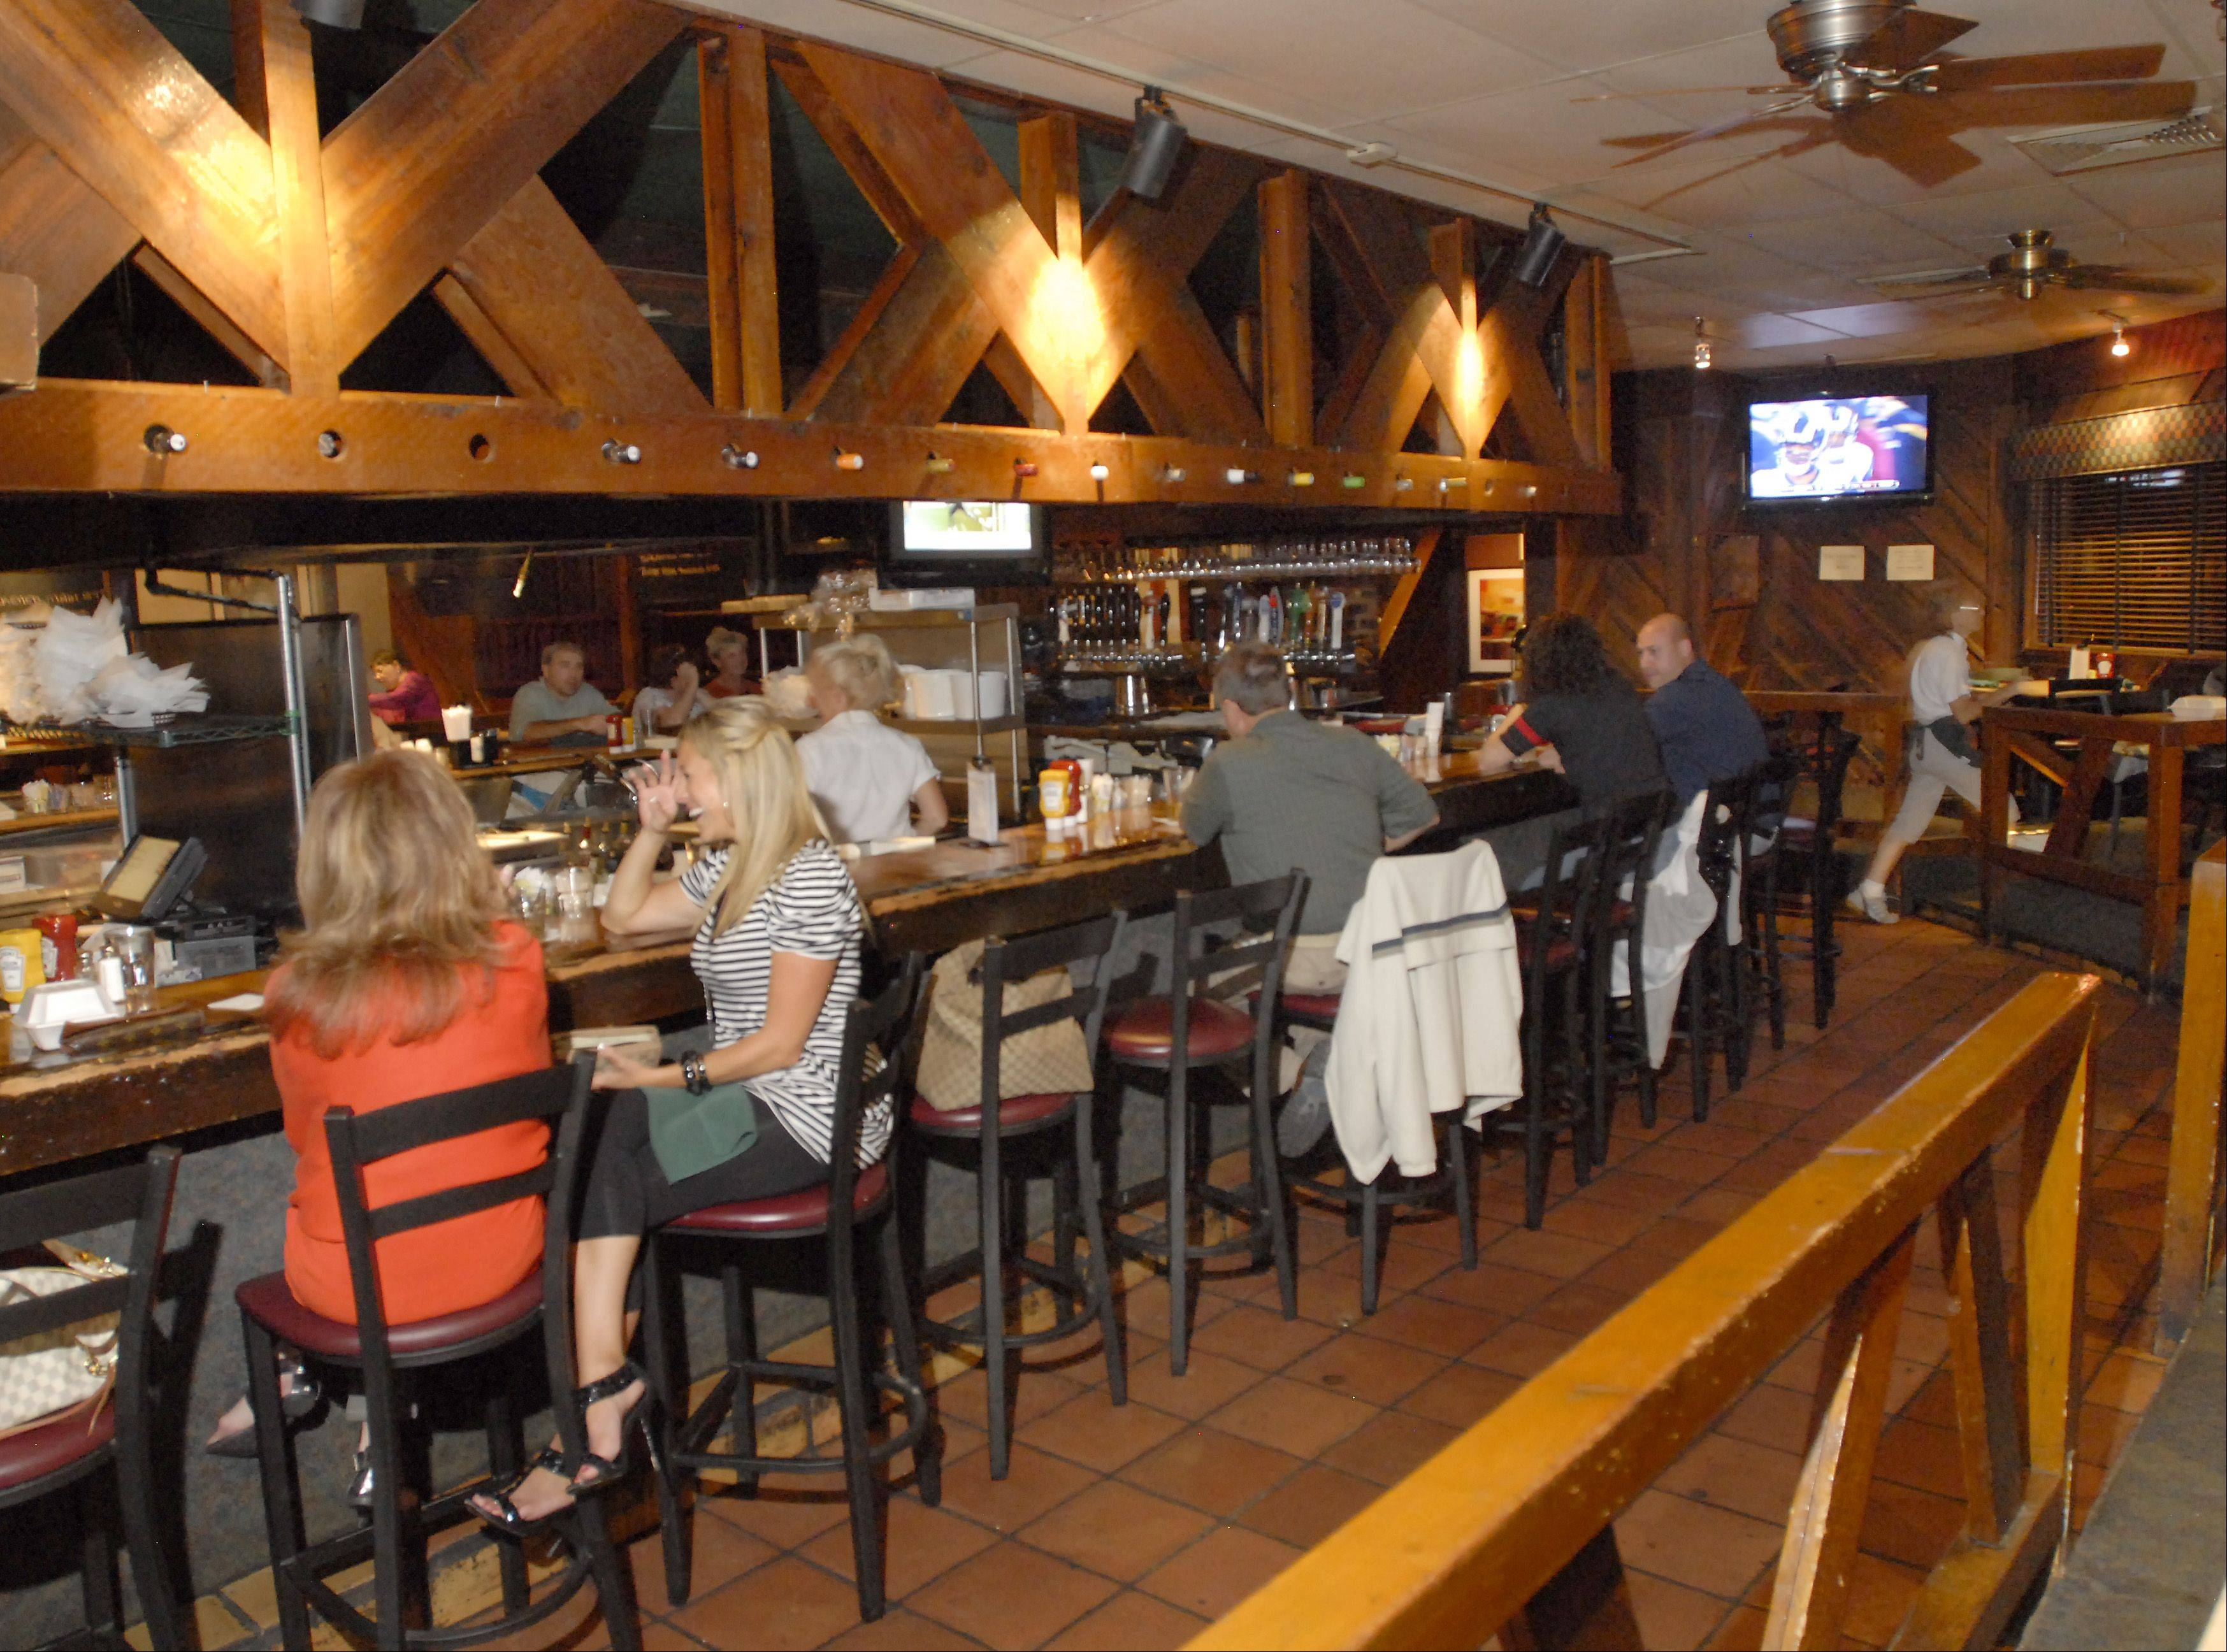 The Assembly American Bar & Caf� in Hoffman Estates is known for its burgers and locally brewed beer.